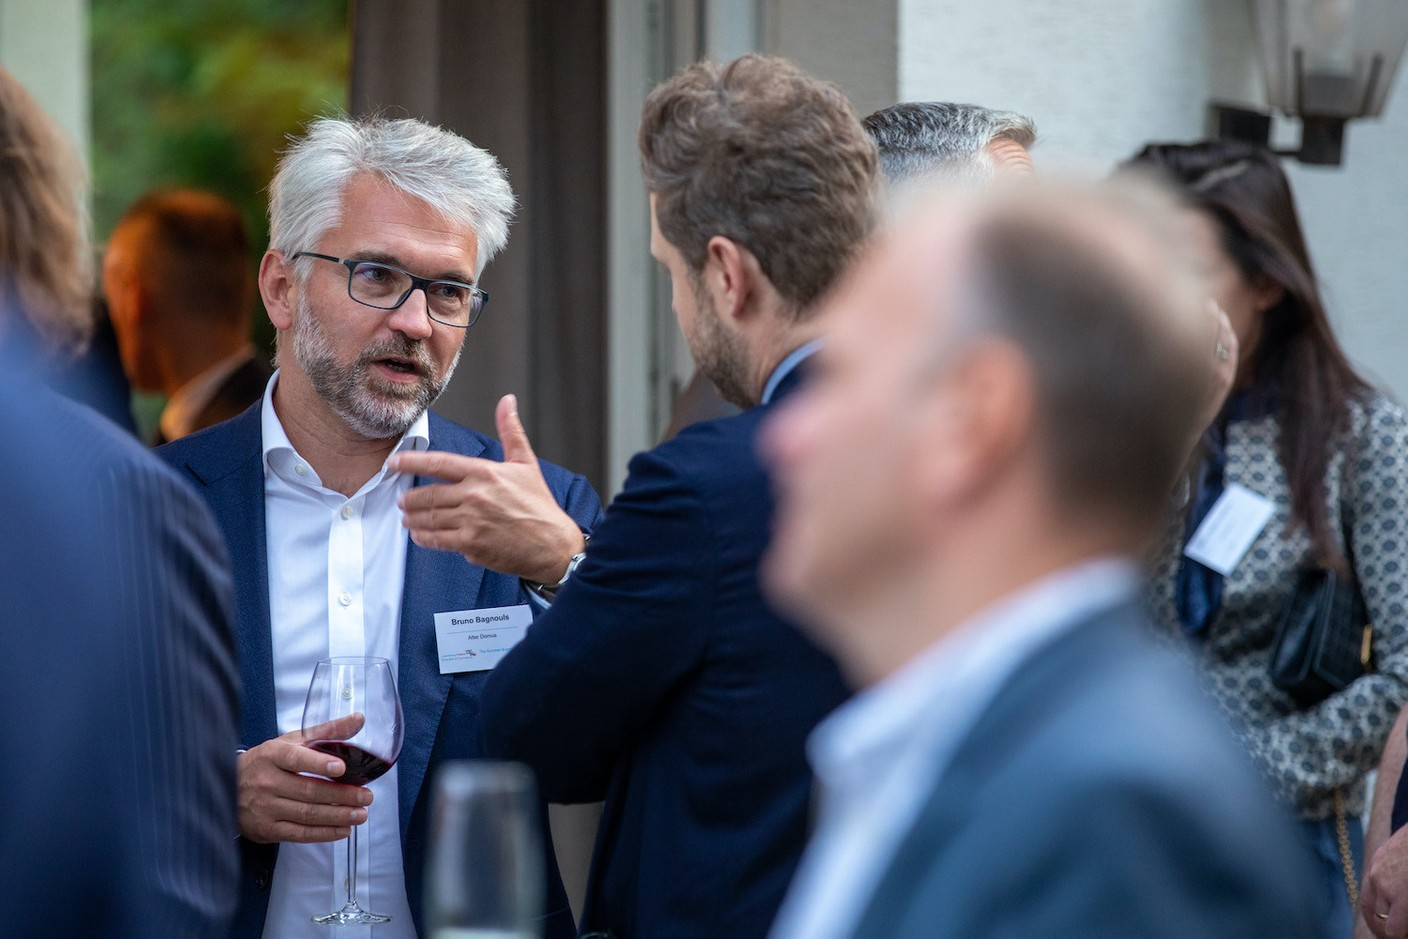 """The event marked the end of summer and the """"rentrée""""  Luxembourg-Poland Chamber of Commerce"""